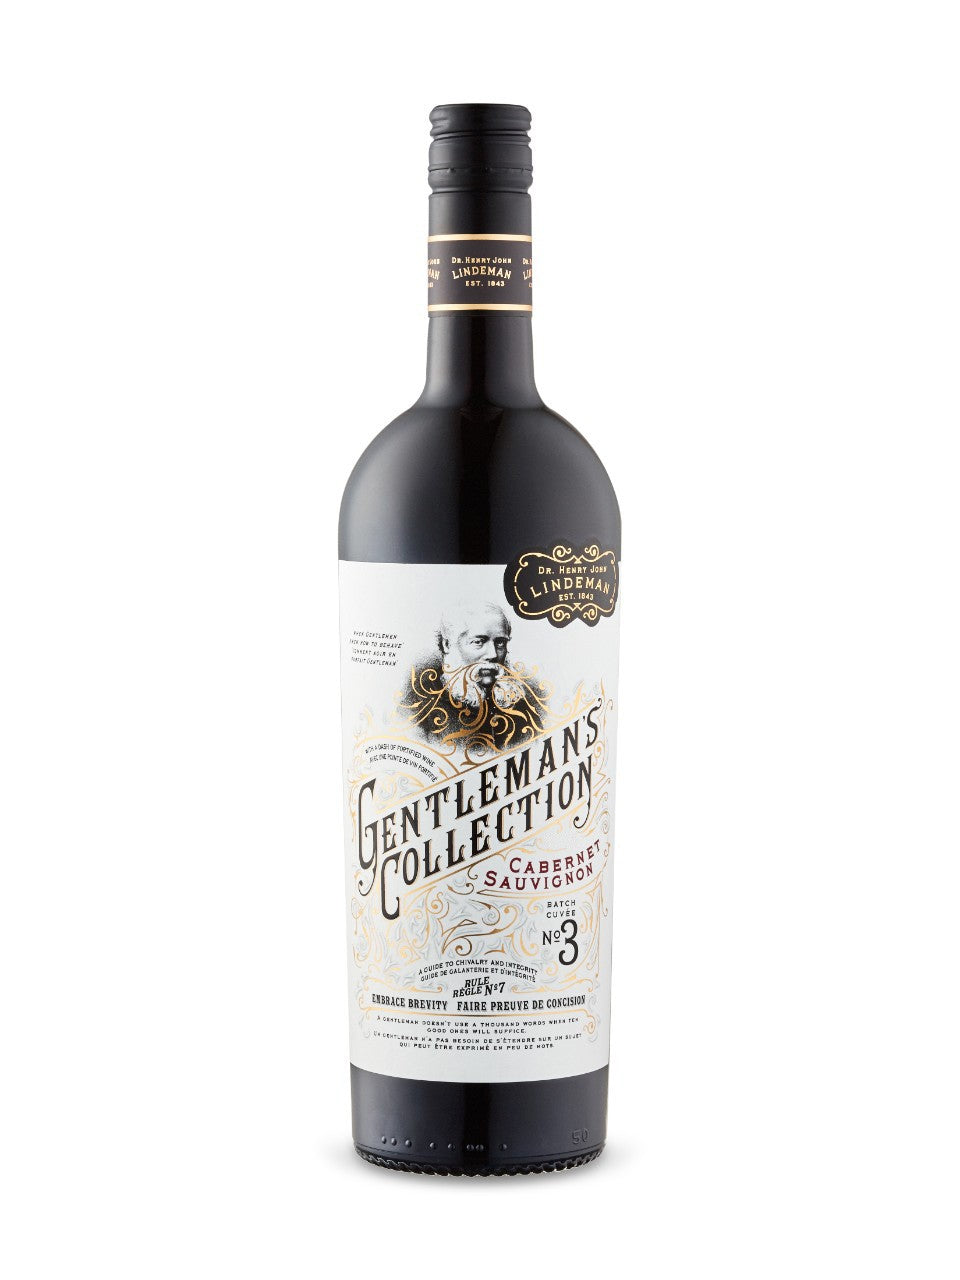 Cabernet Sauvignon, Lindeman's Gentleman's Collection, Australia, 2016